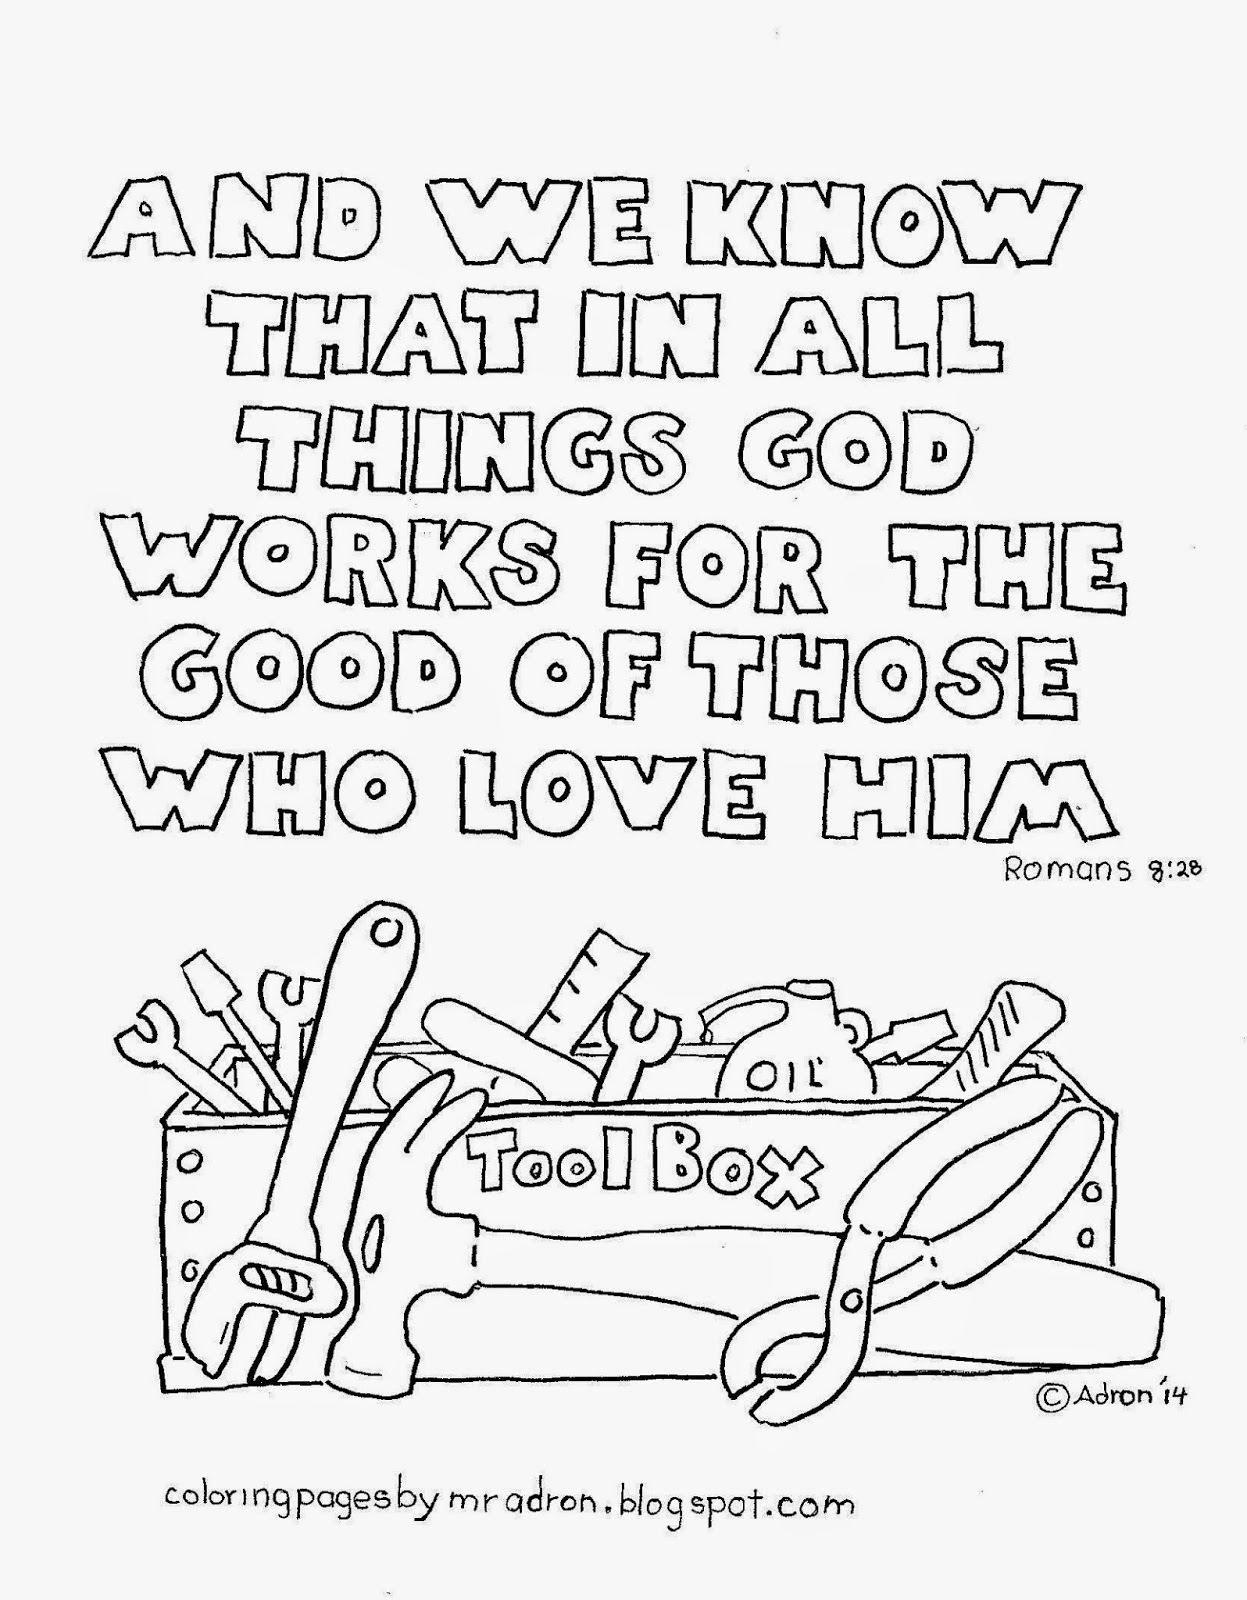 Coloring Pages for Kids by Mr. Adron: In Everything God